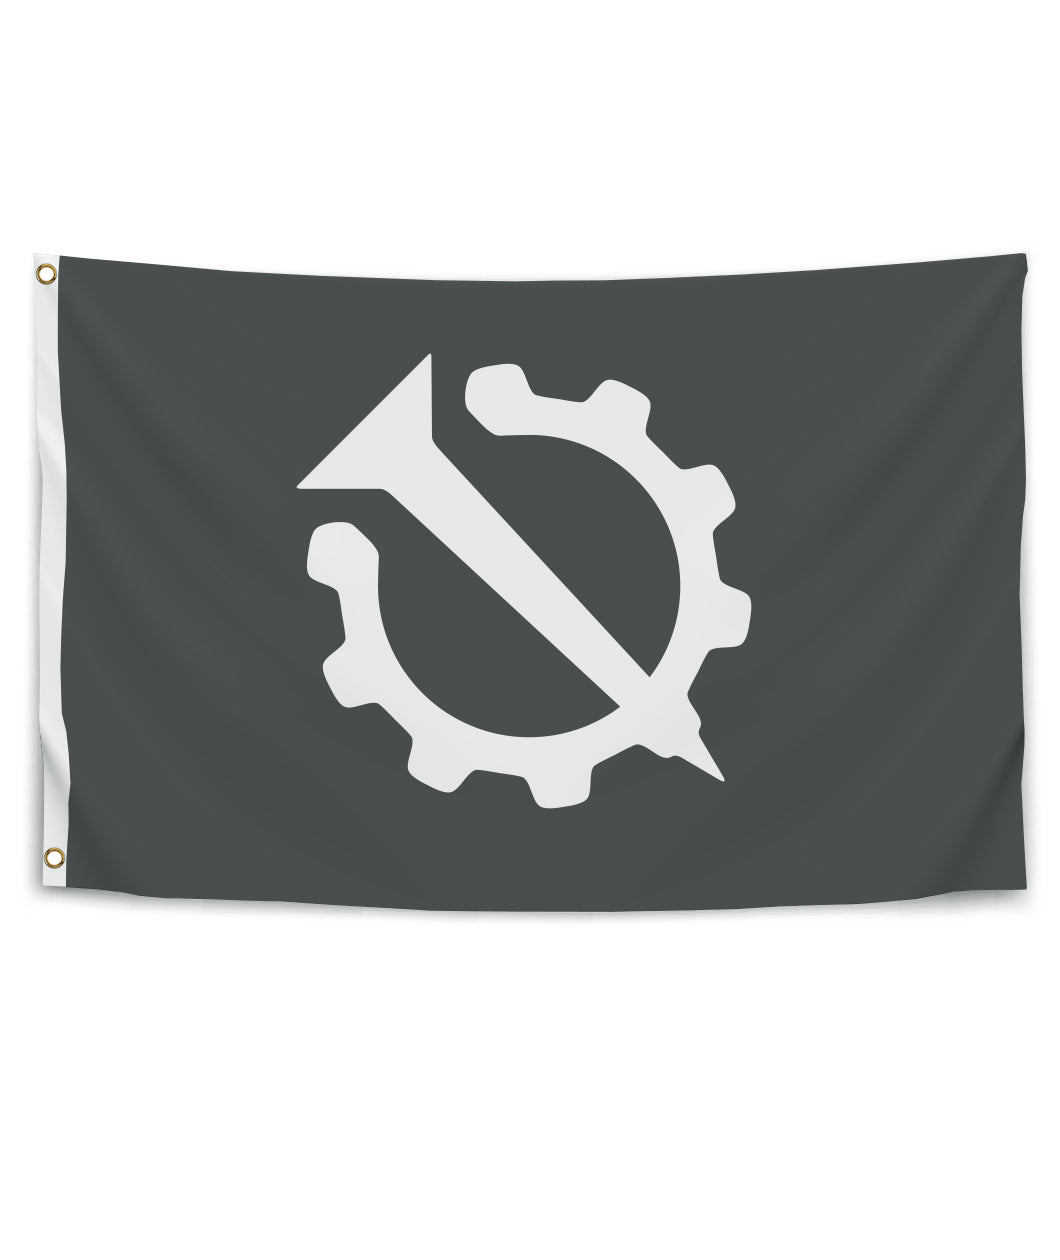 Nail and Gear Flag